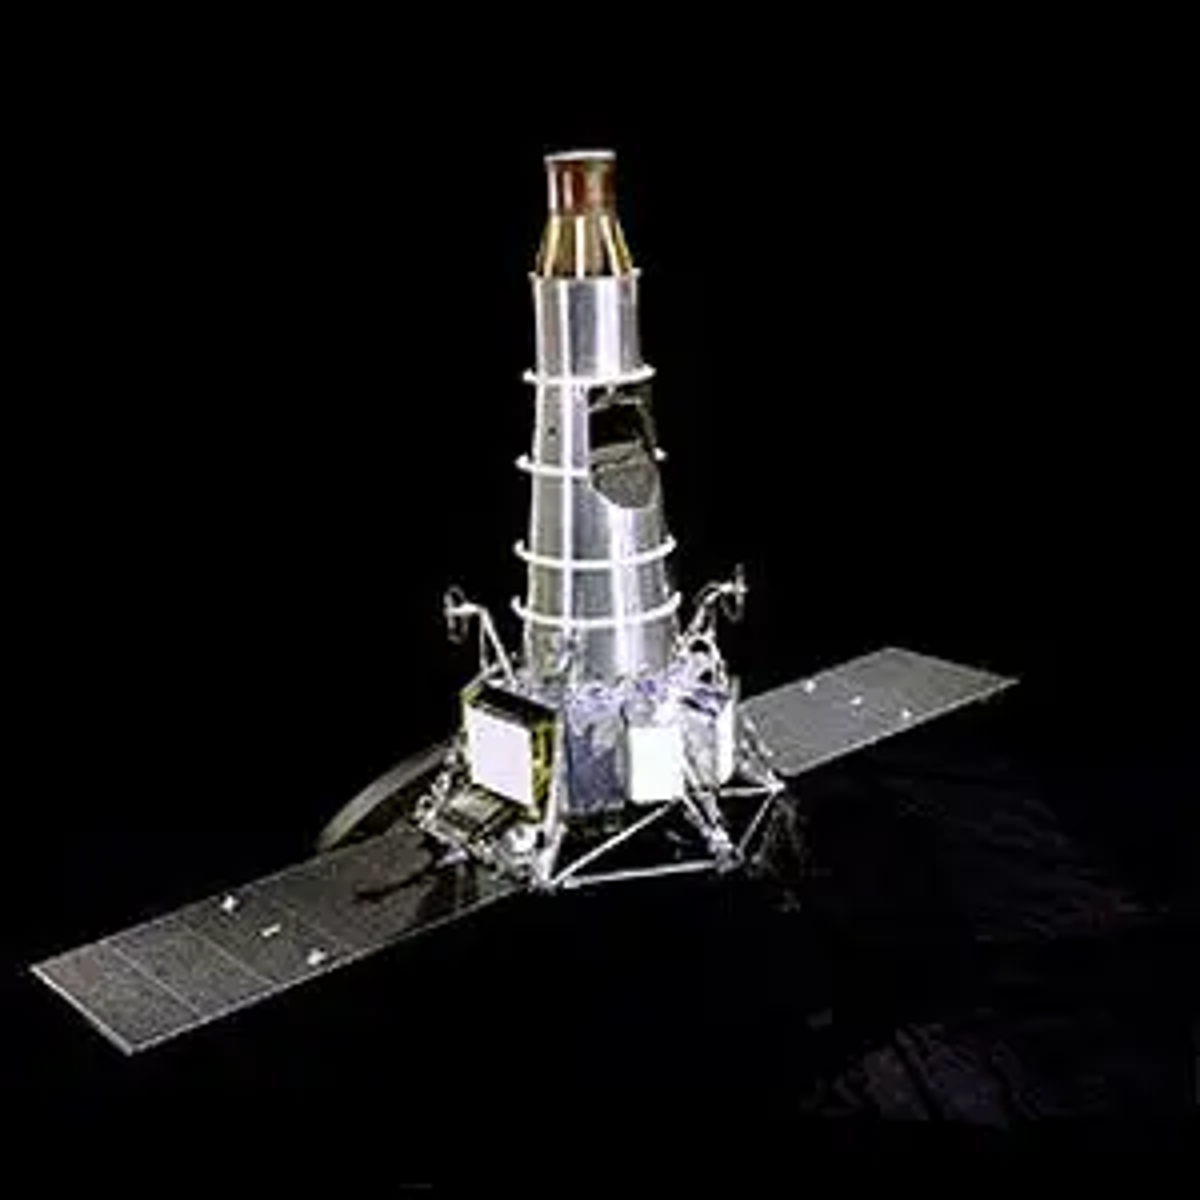 A photo of what the Ranger fleet of spacecraft looked like.